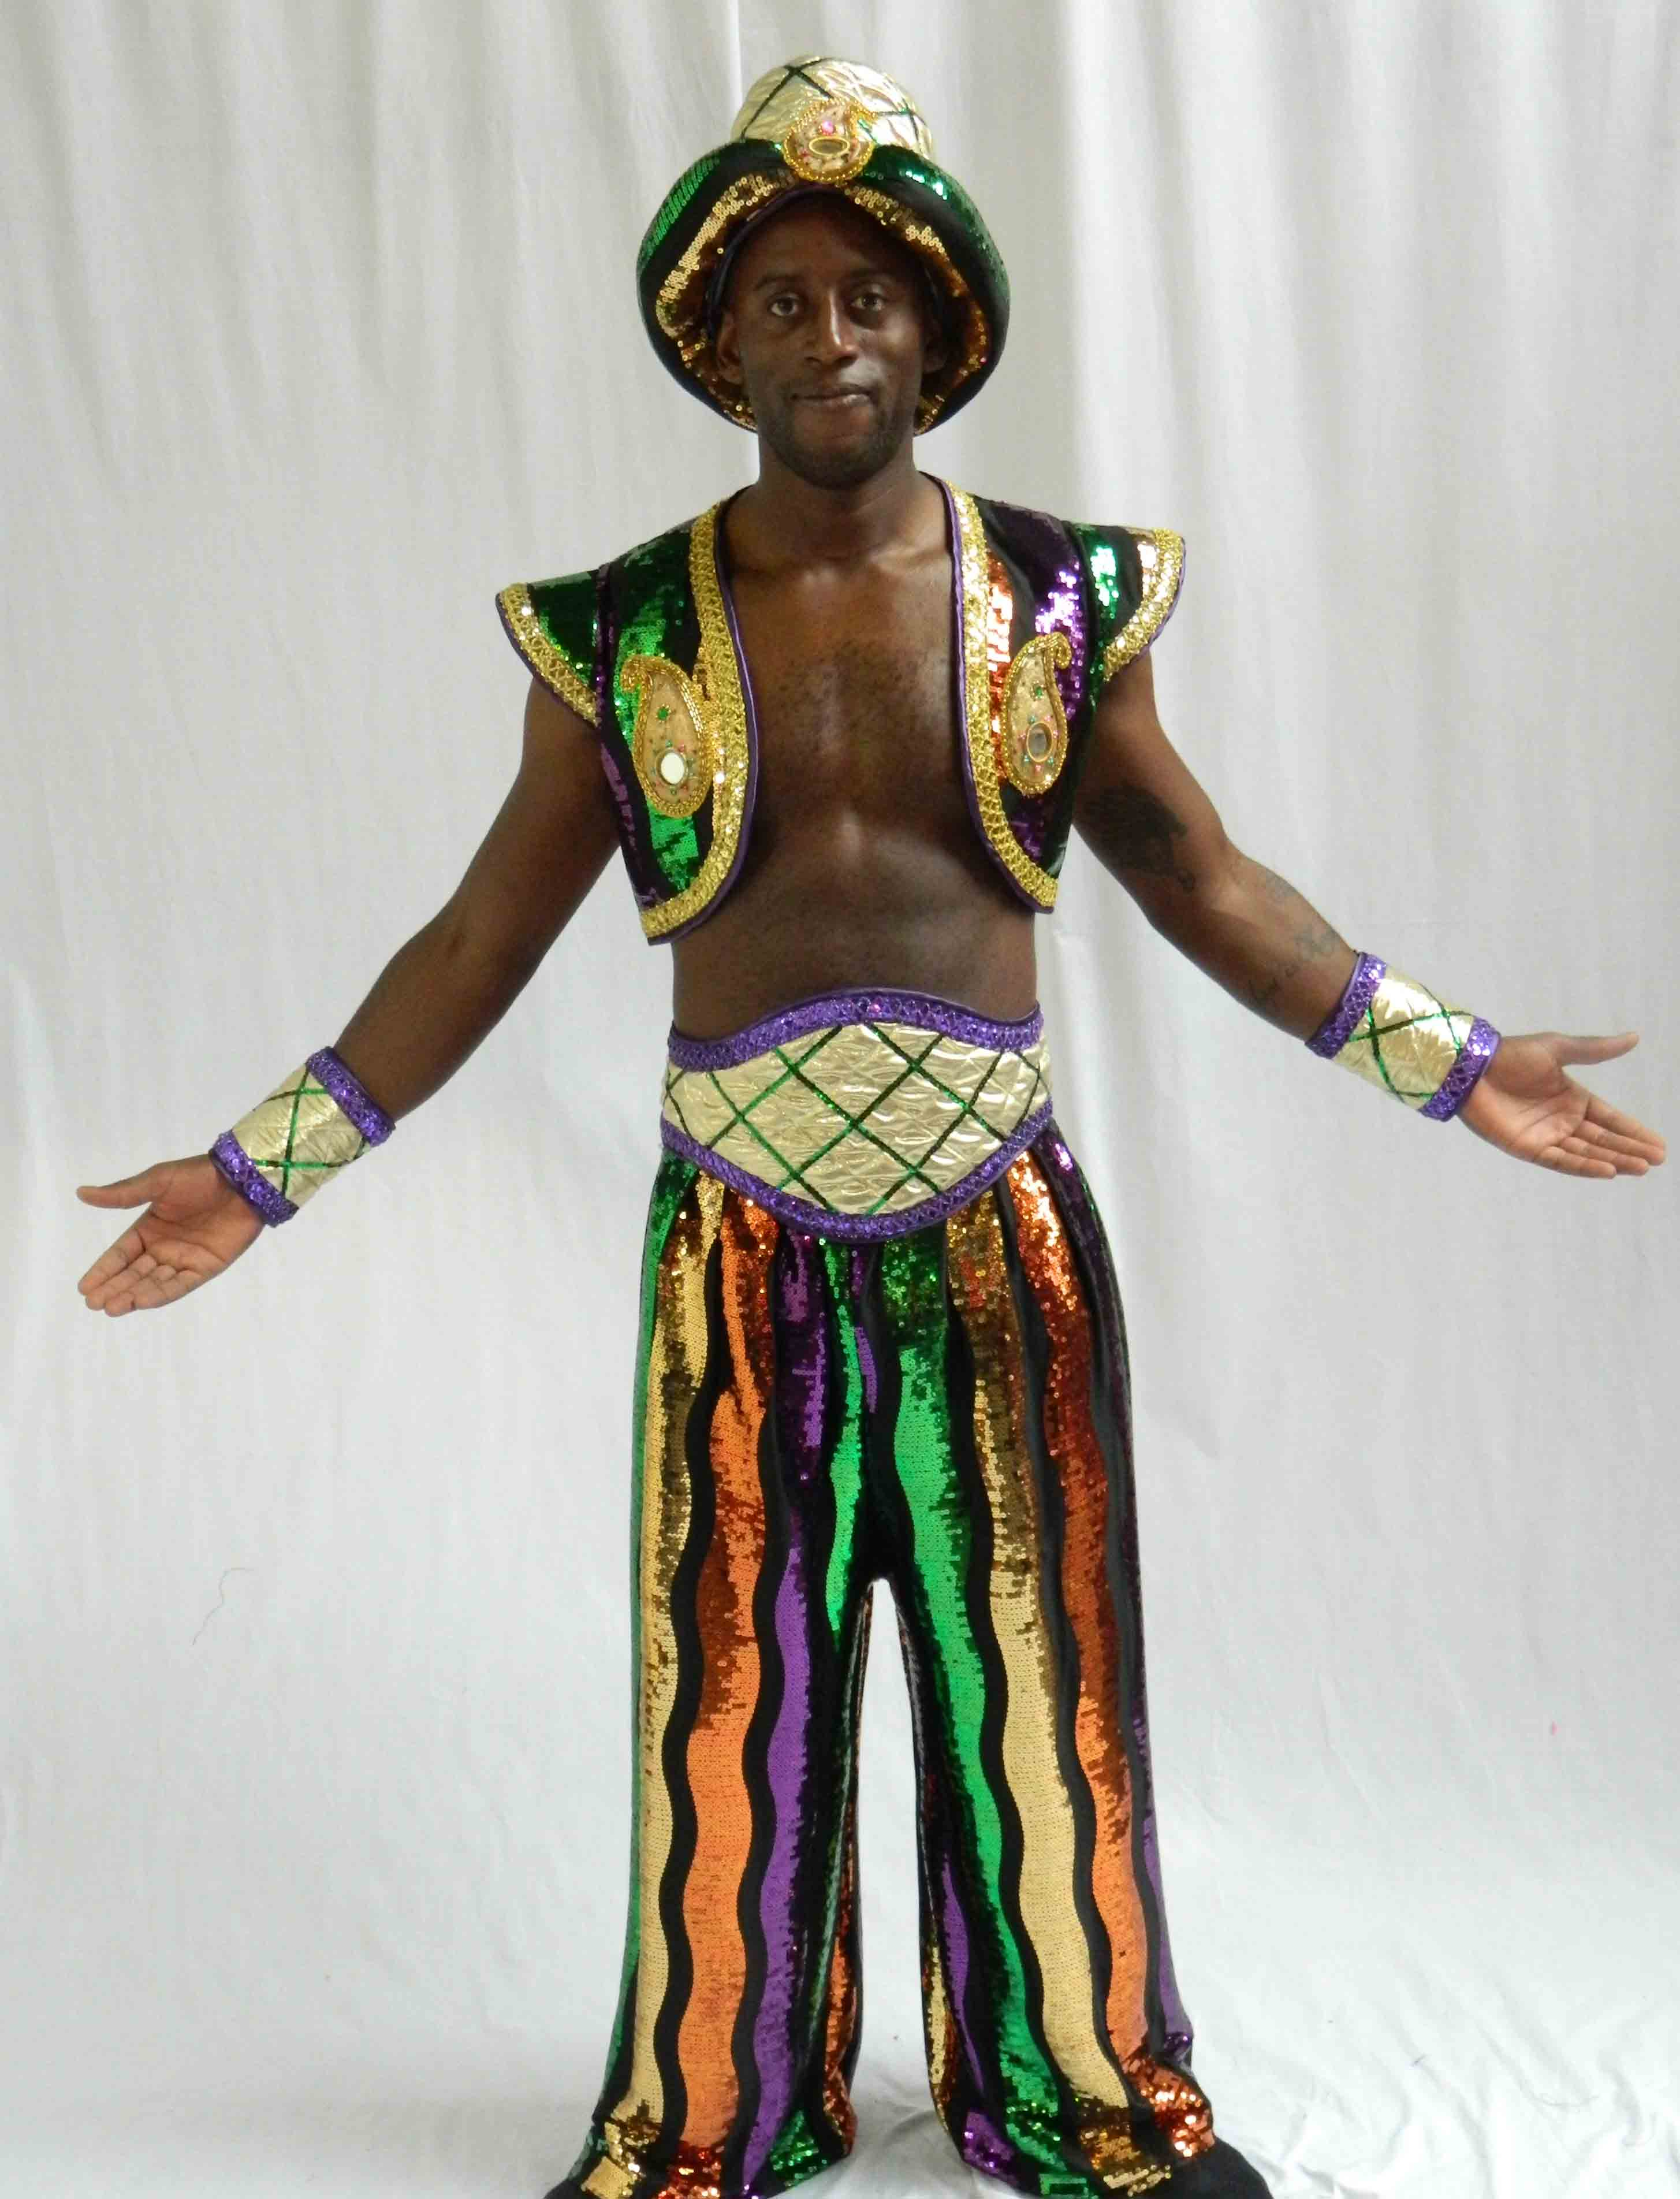 Aladdin Costume Hire 16 - Aladdin Rich